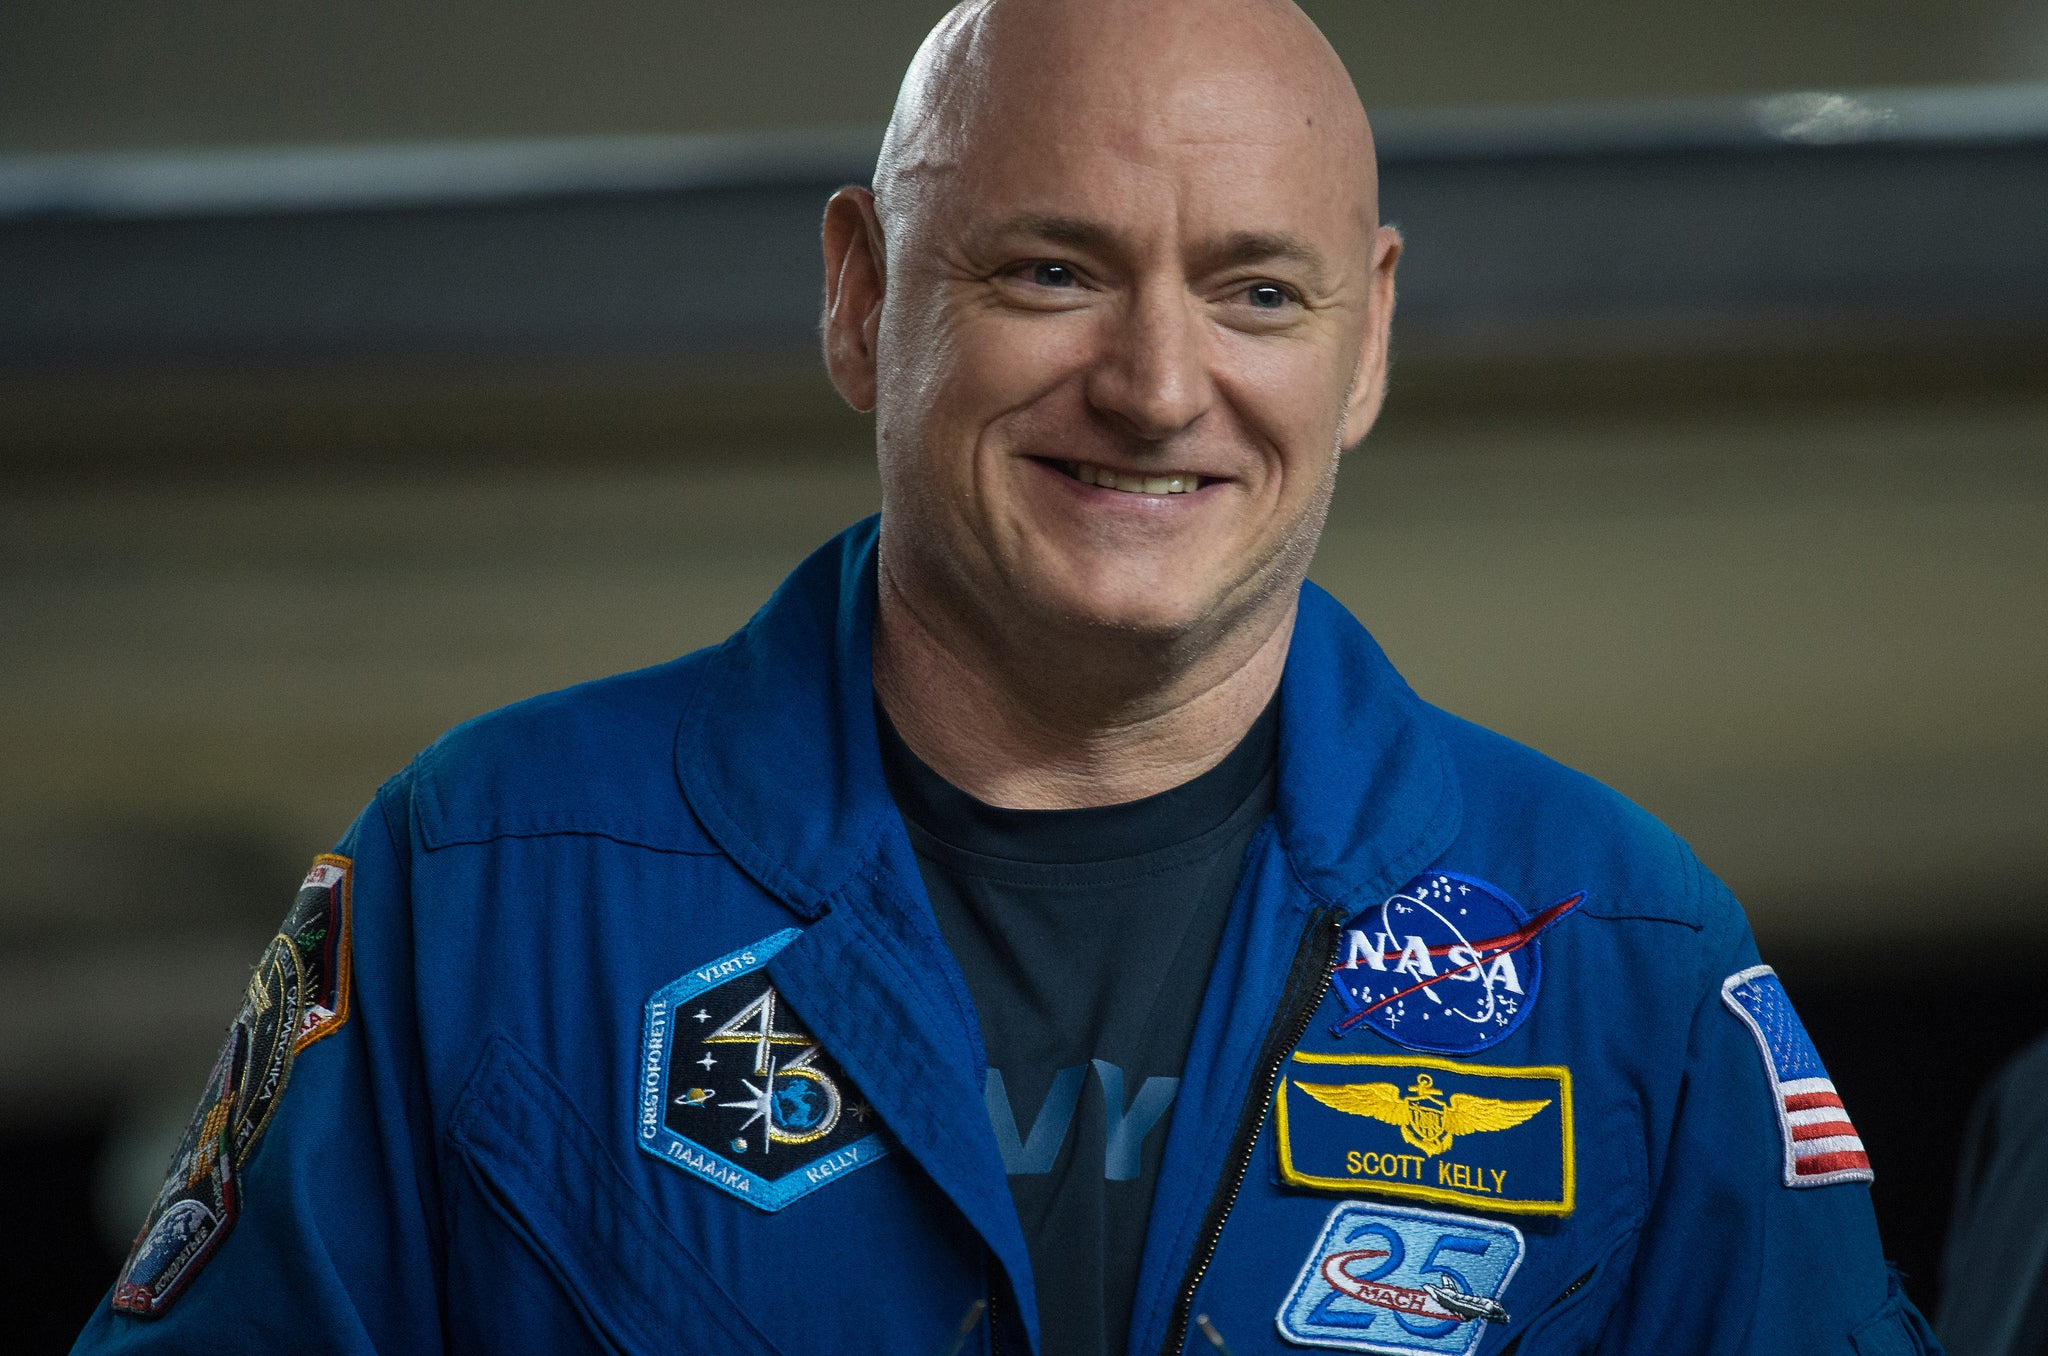 Scott Kelly Gained Two Inches During His Year in Space